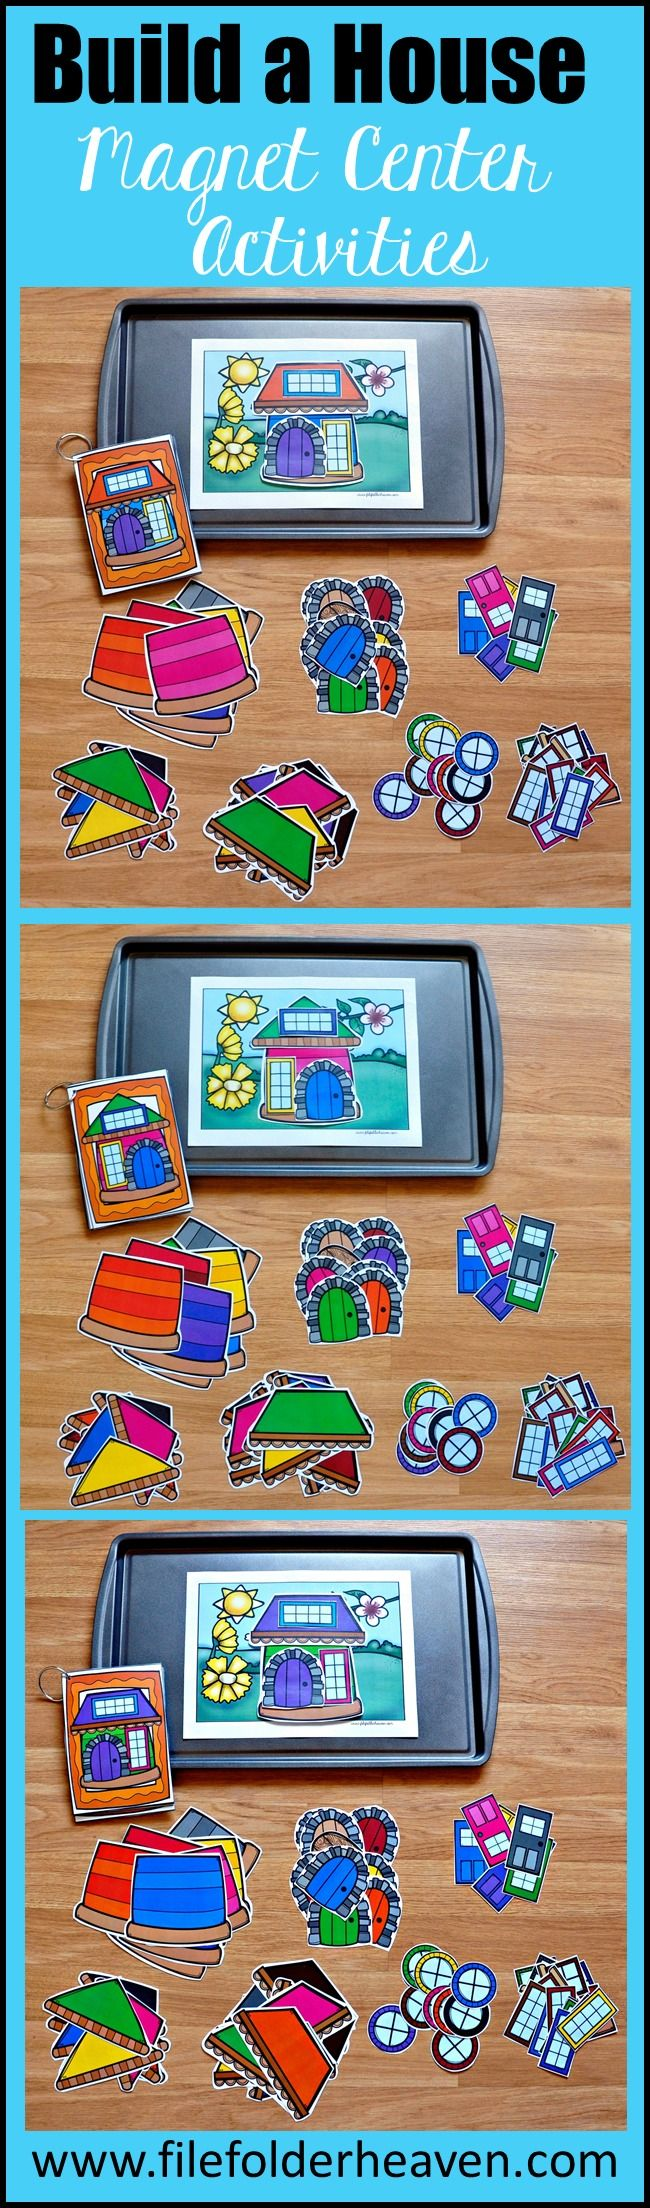 """These Build a House Center Activities can be set up as cookie sheet activities, a magnet center or completed as cut and glue activities. This activity includes: 1 background, 14 house example cards, and a big set of """"build a house"""" building pieces for creative building (all in color). In this activity, students work on visual discrimination skills, recognizing same and different, and replicating a model."""